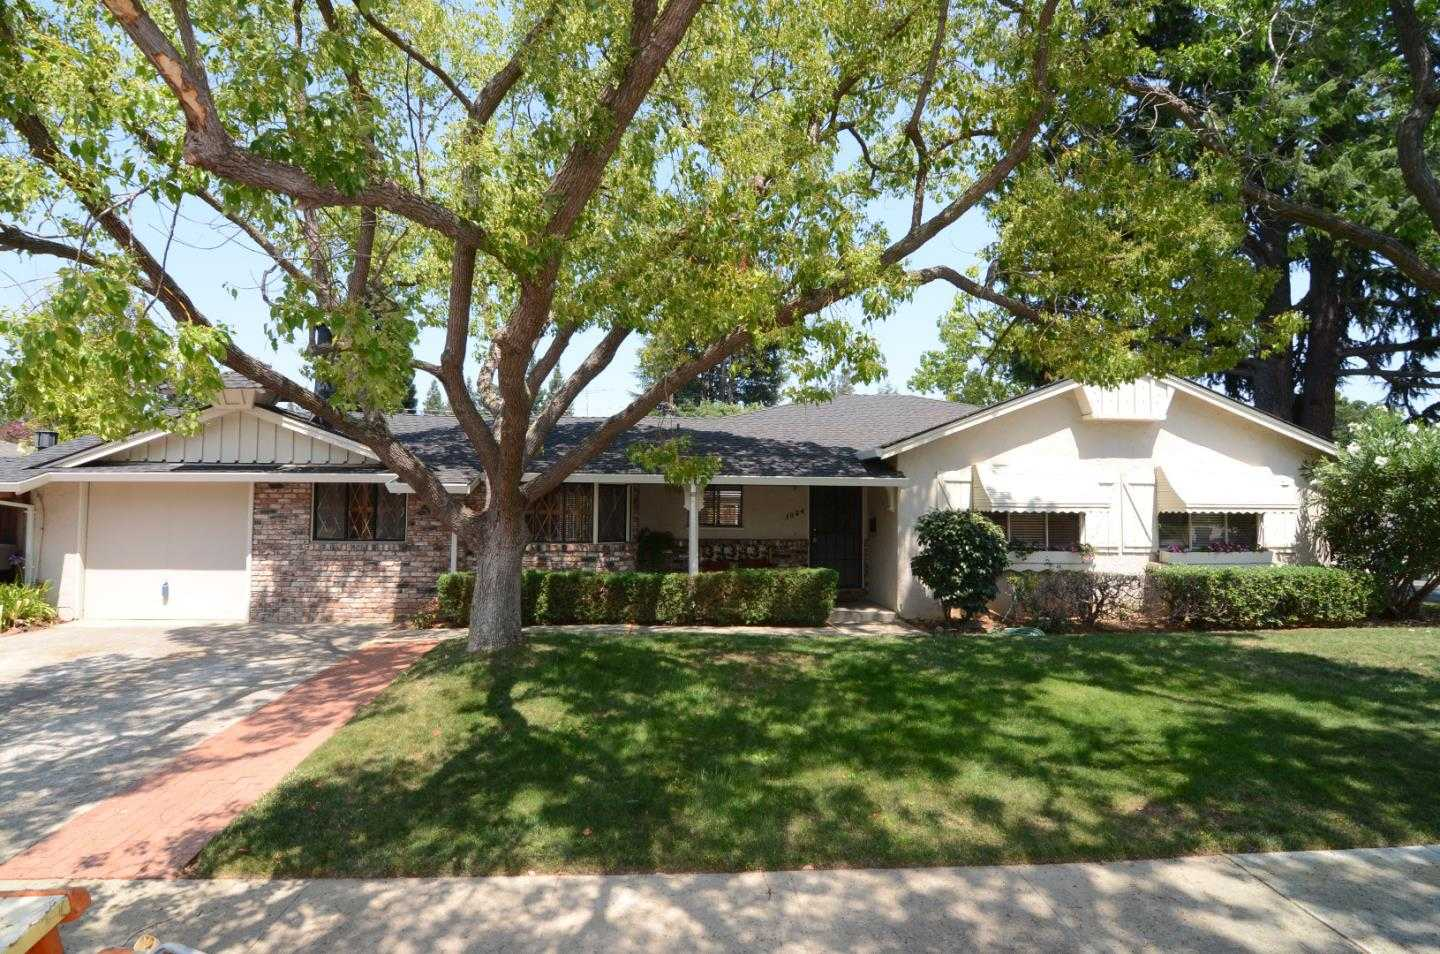 $2,200,000 - 3Br/2Ba -  for Sale in Mountain View